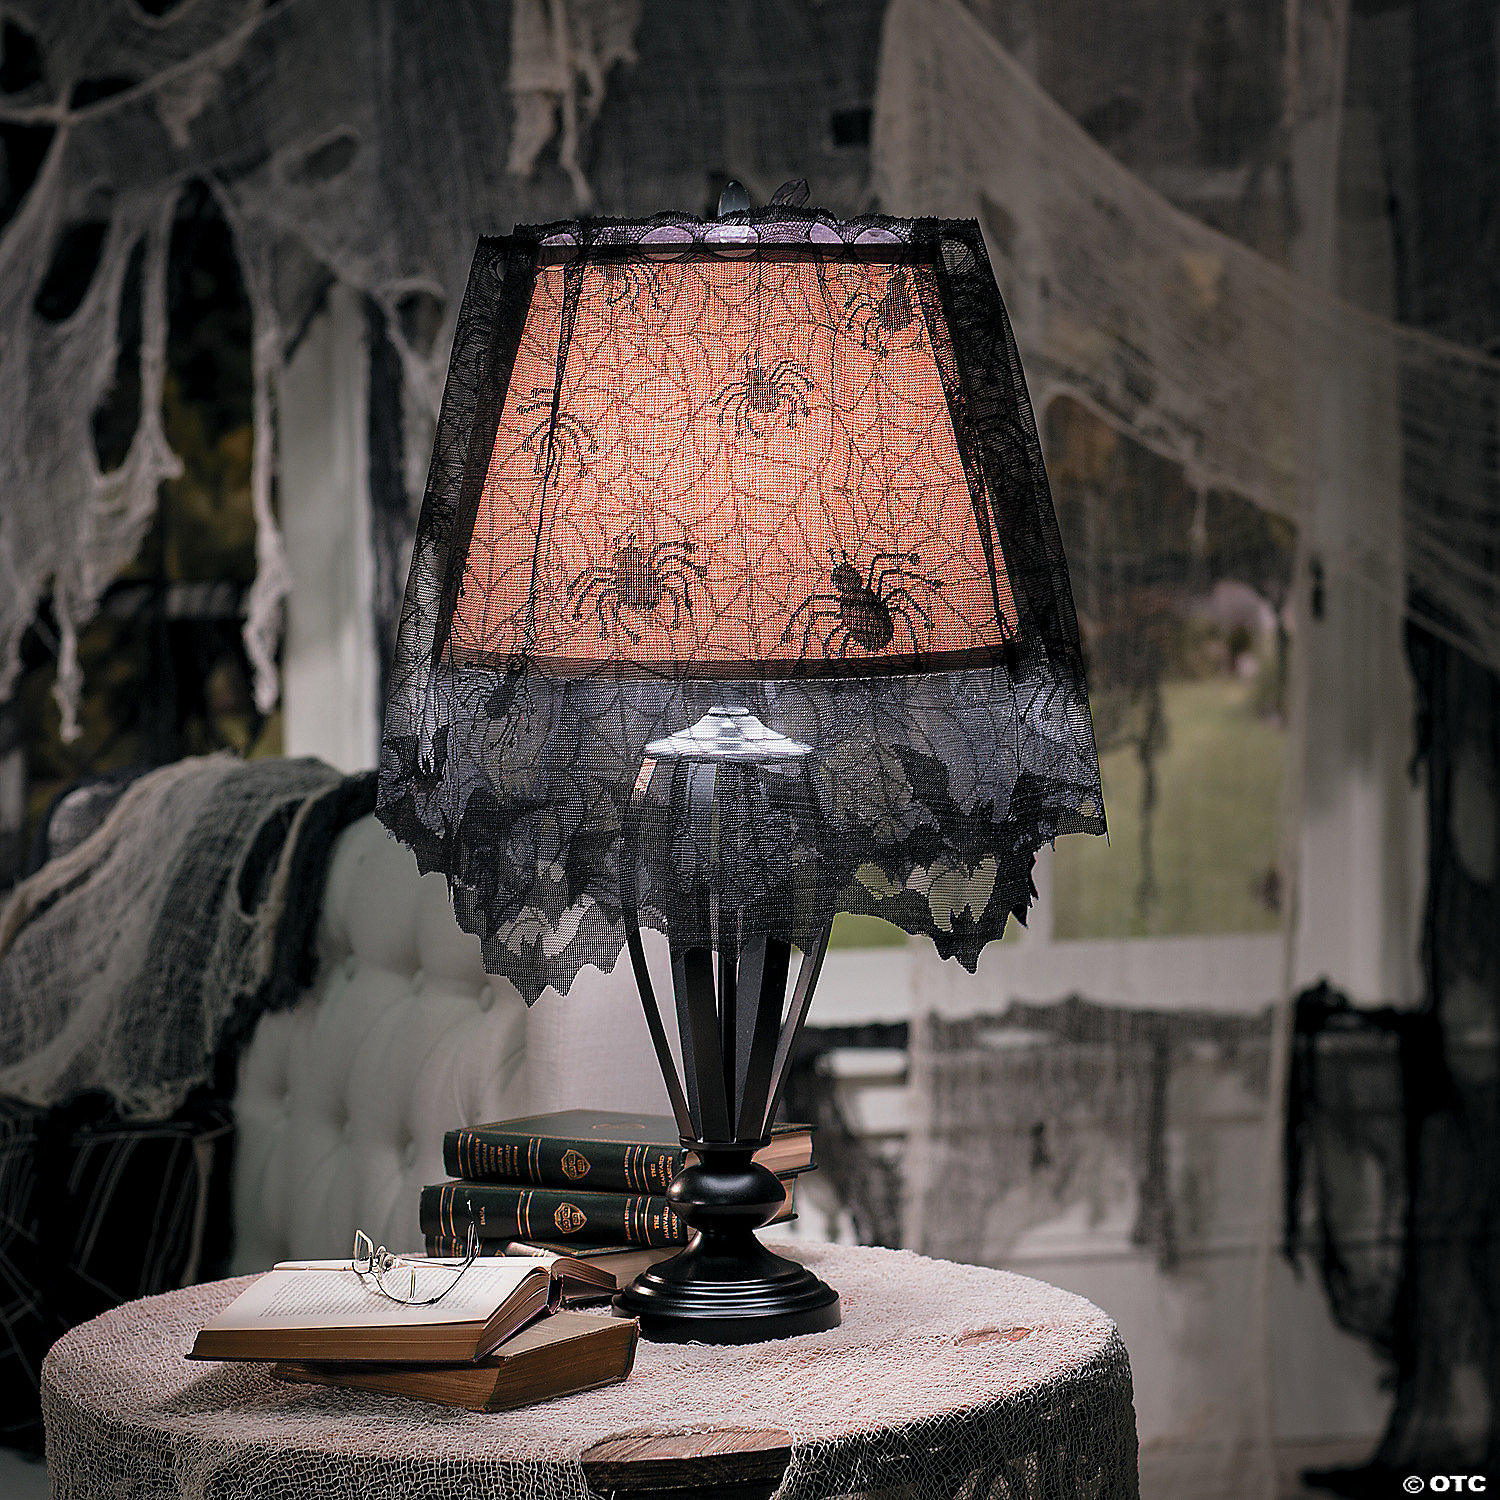 Creepy Lace Spiderweb Lampshade Topper Halloween Decoration